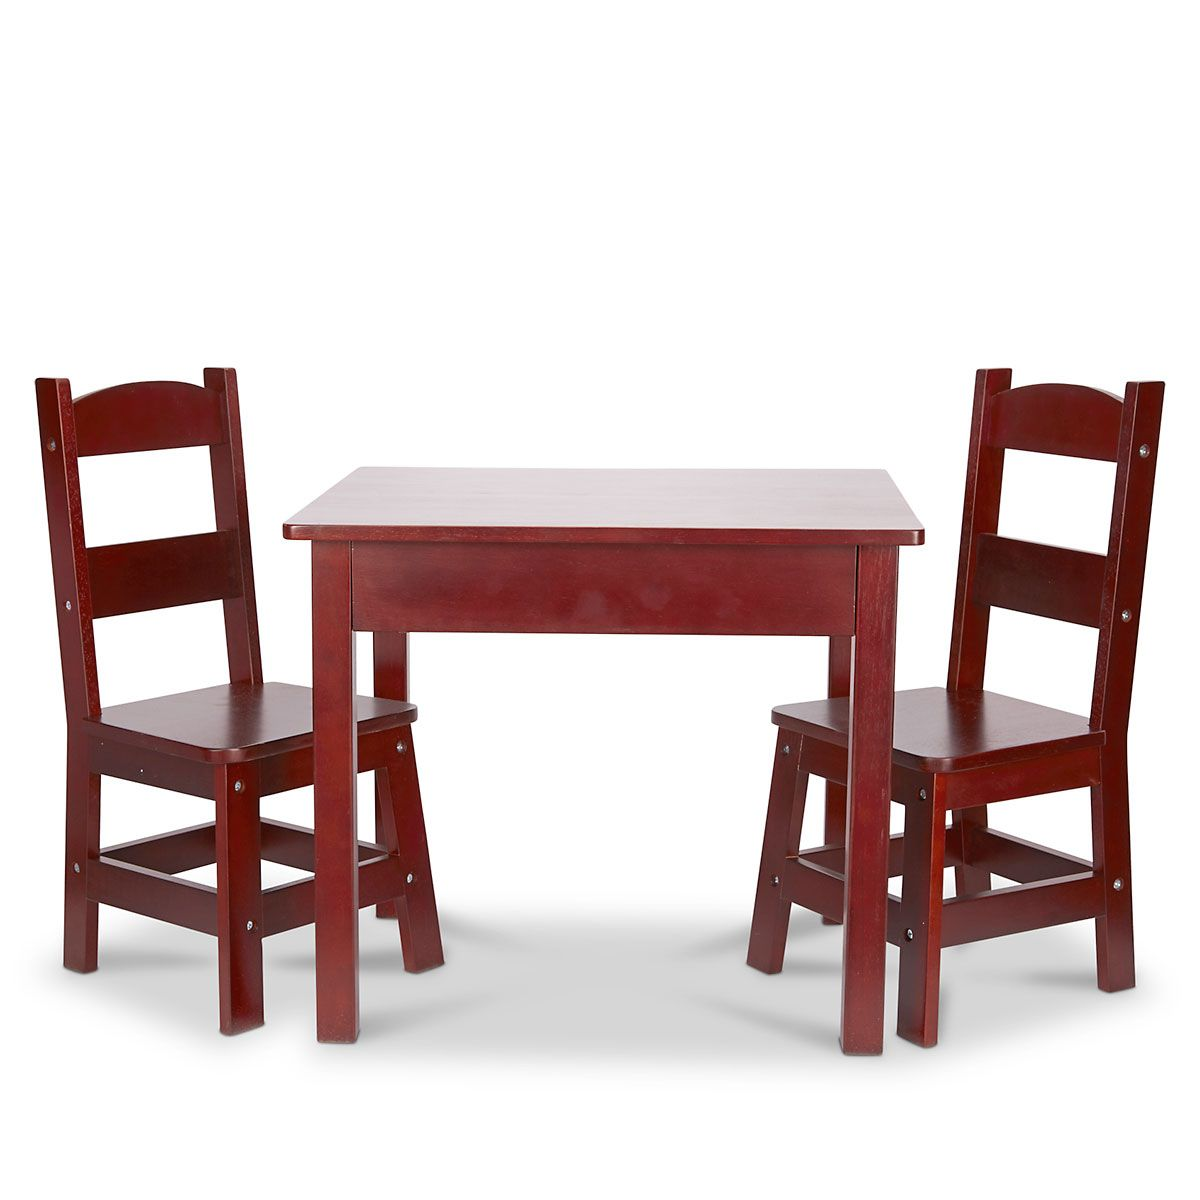 Custom Wooden Table and Chairs by Melissa & Doug®